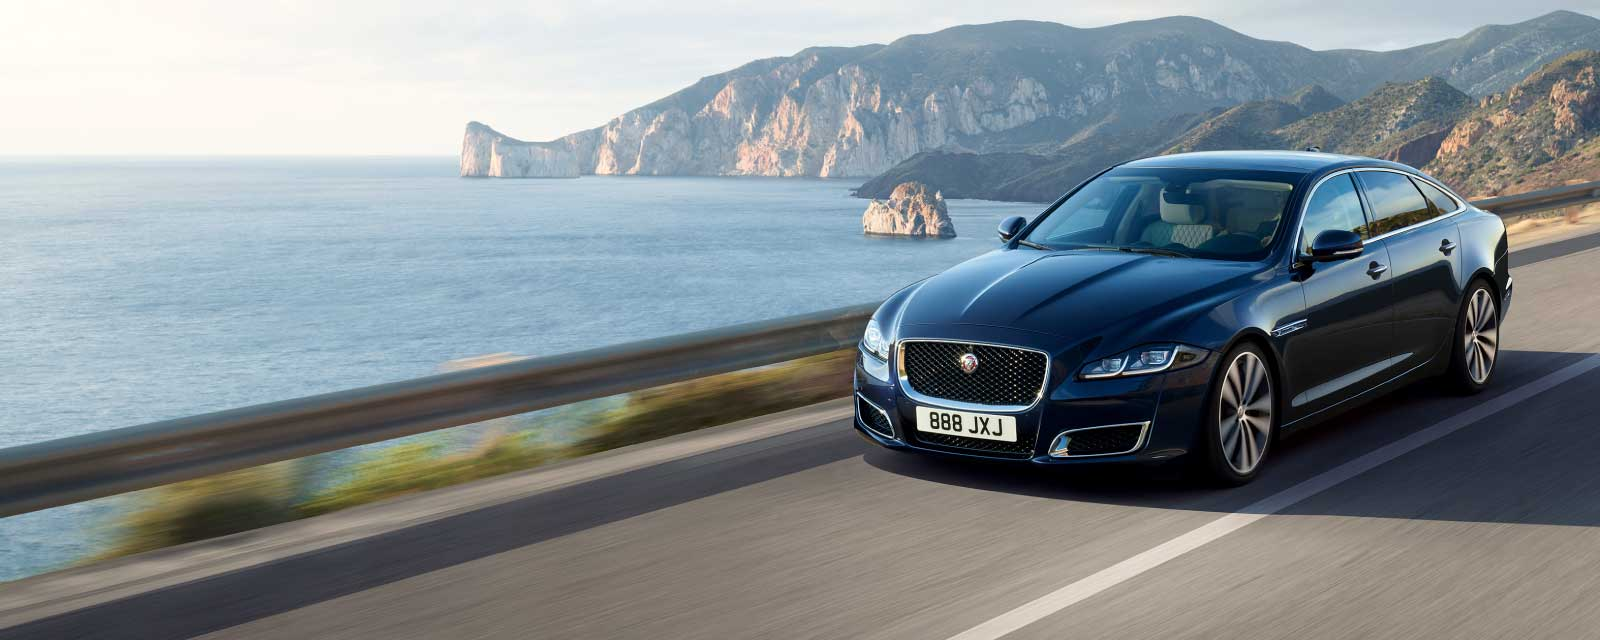 Jaguar XJ Business Contract Hire Offer